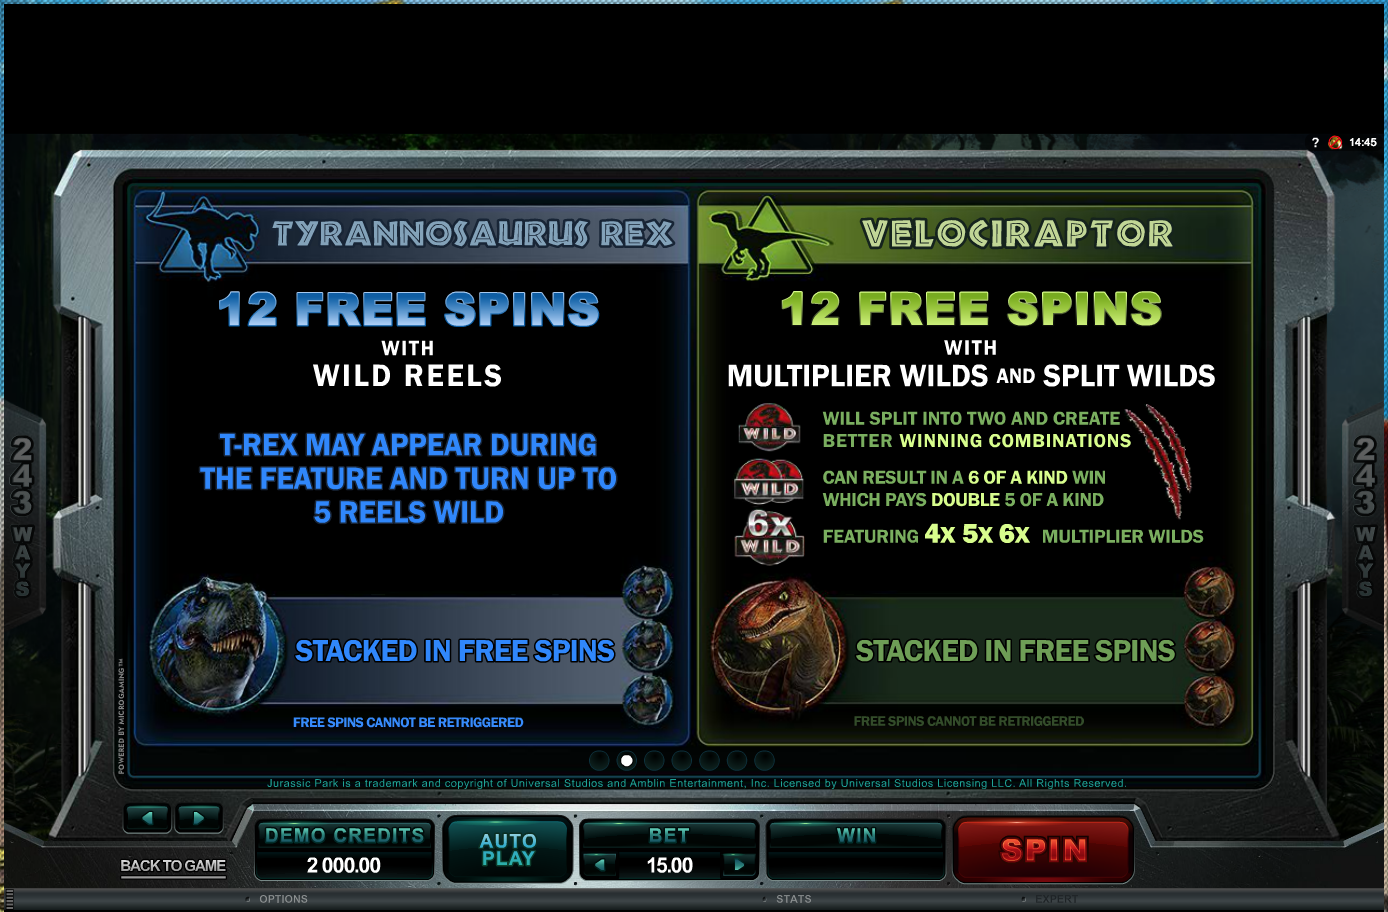 Free spins rules 1